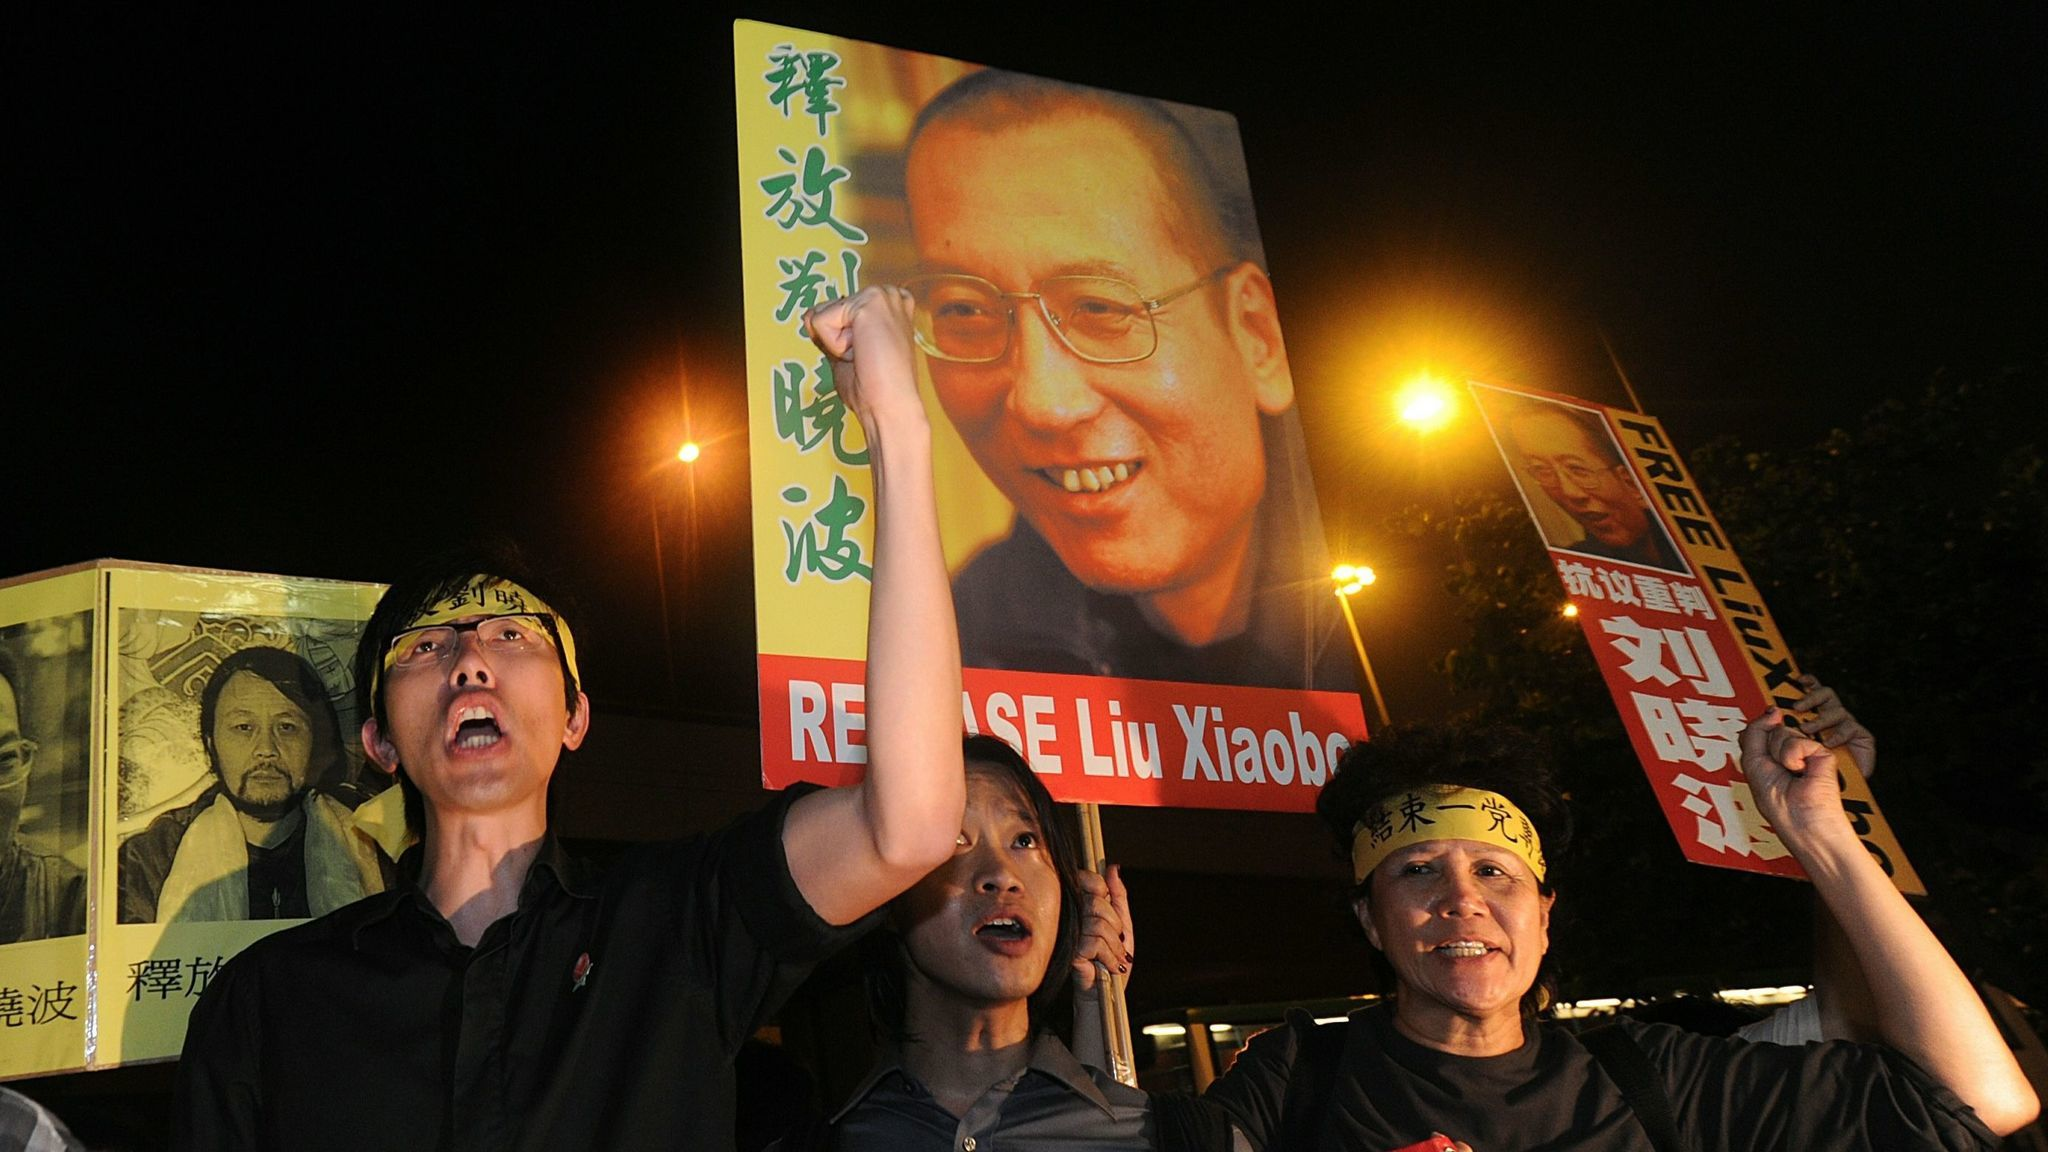 Protestors demonstrate to free Liu Xiaob